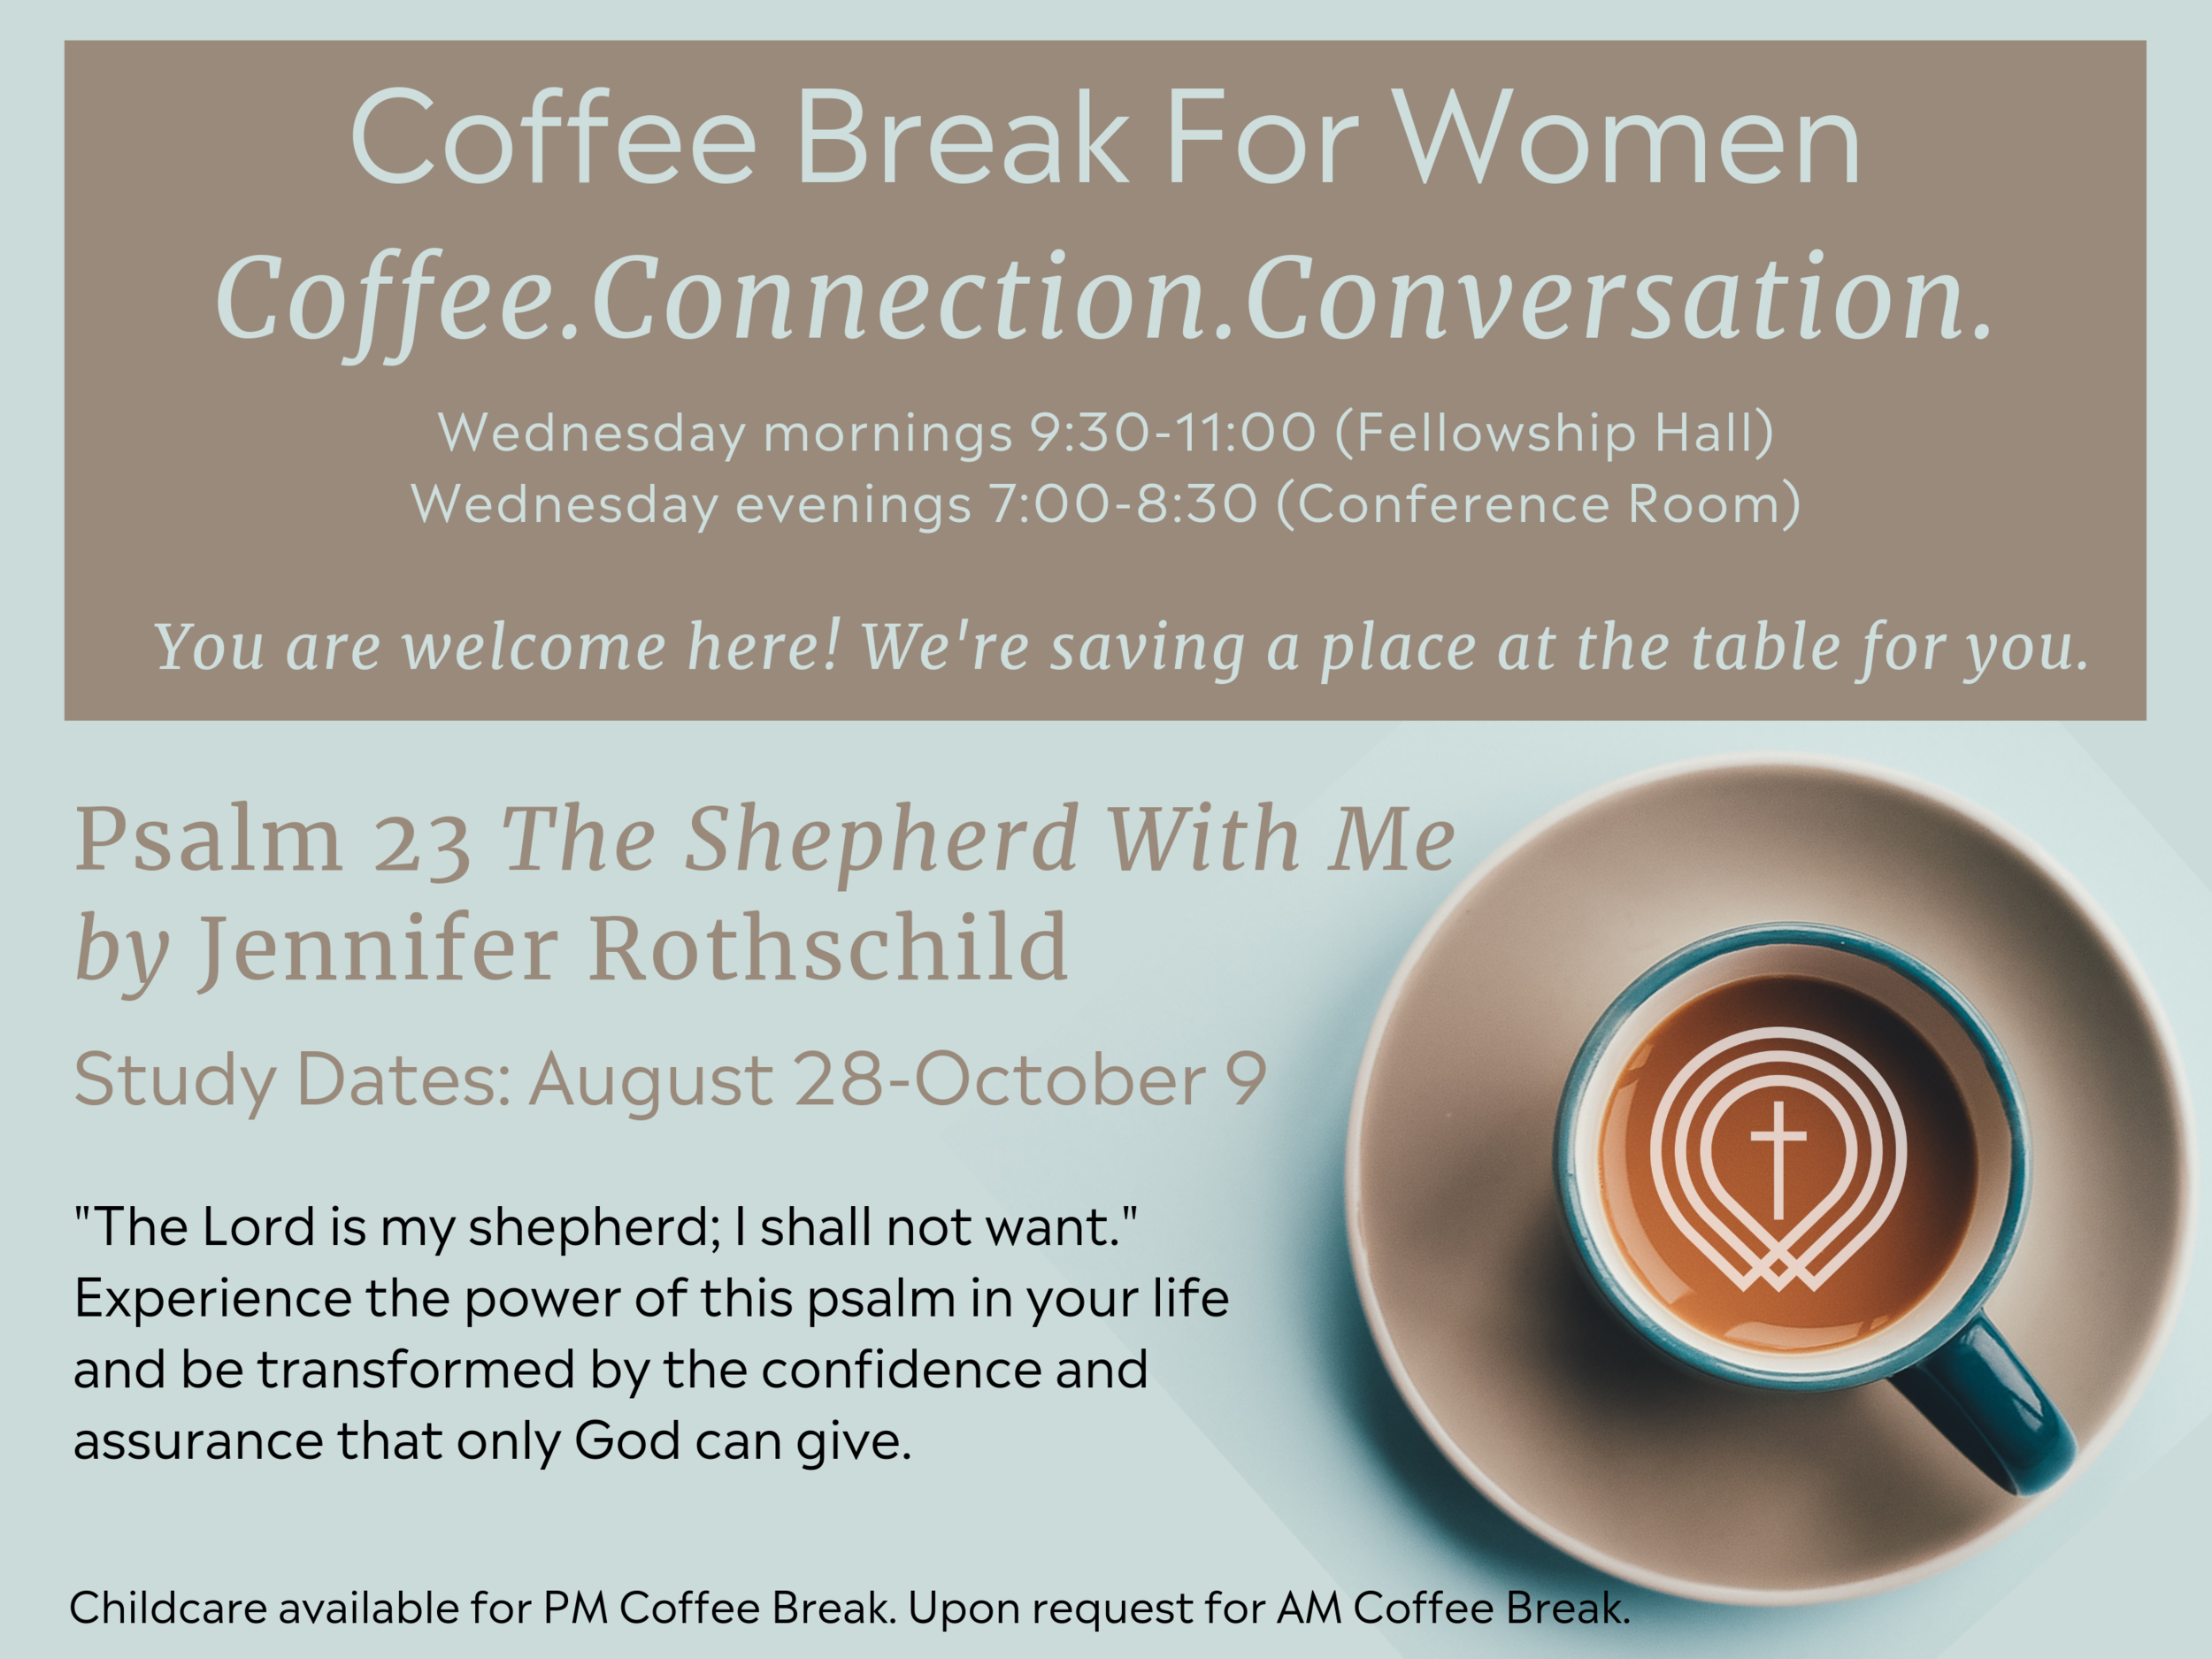 Coffee Break for Women Slide.png